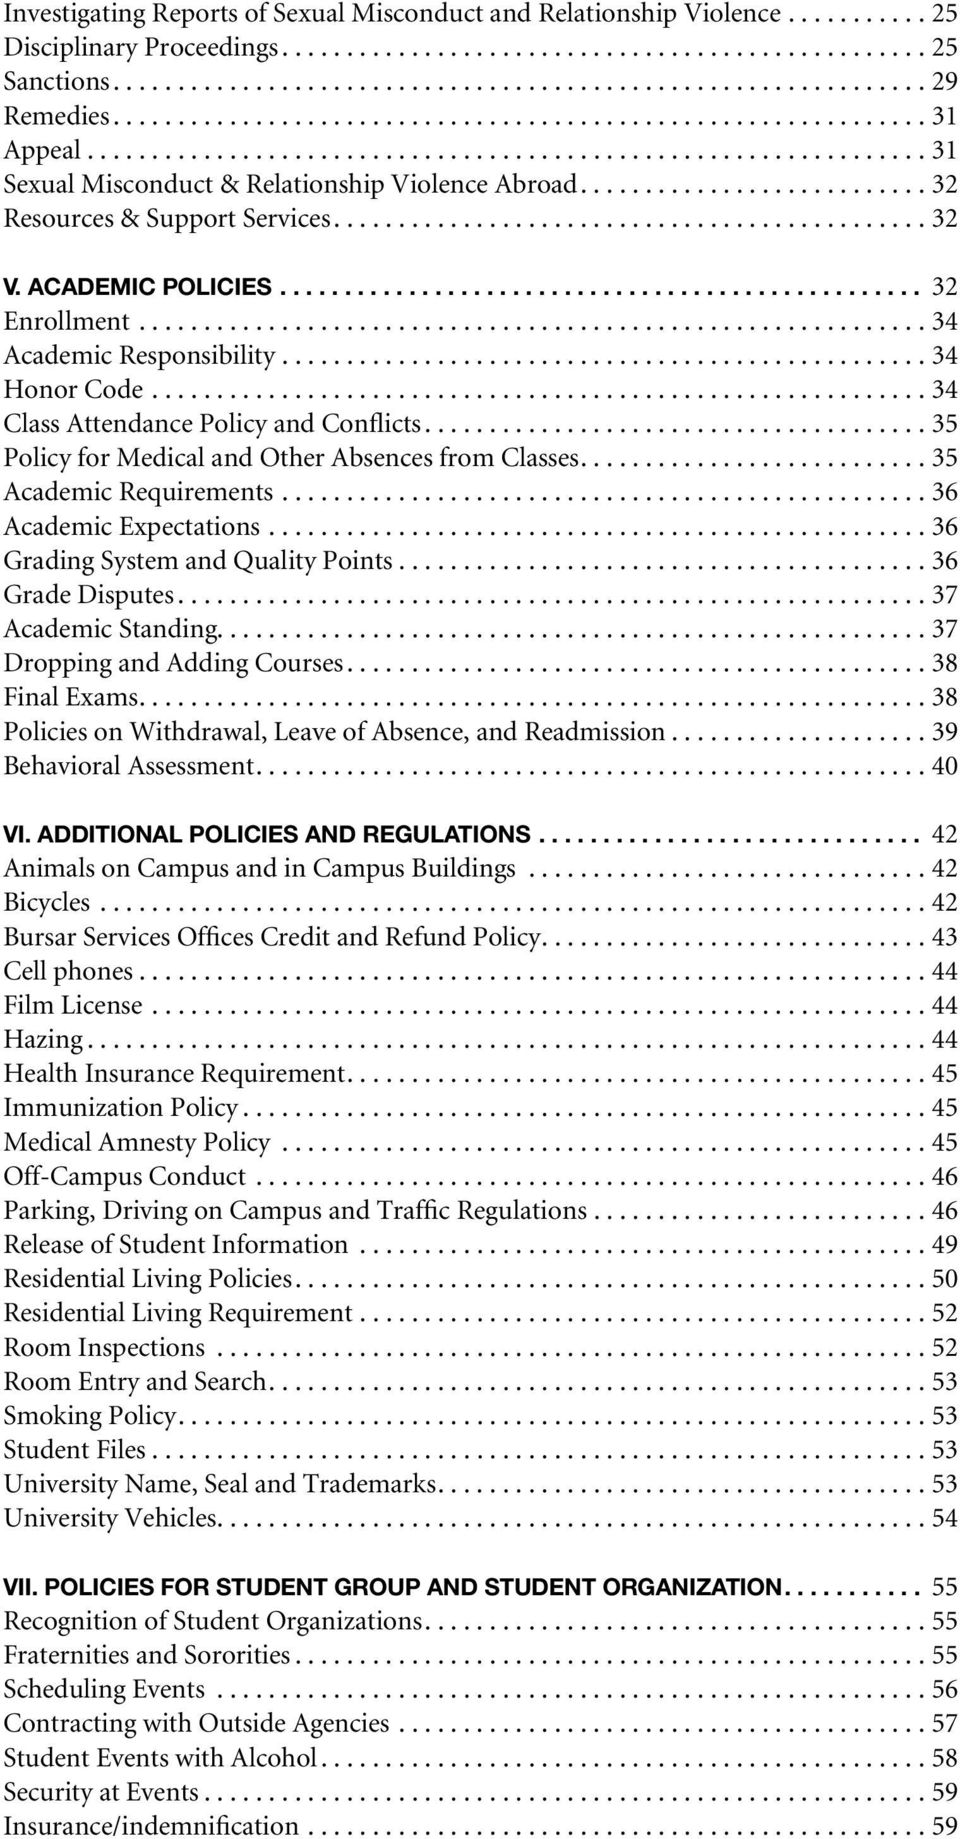 ..35 Policy for Medical and Other Absences from Classes...35 Academic Requirements...36 Academic Expectations...36 Grading System and Quality Points...36 Grade Disputes...37 Academic Standing.